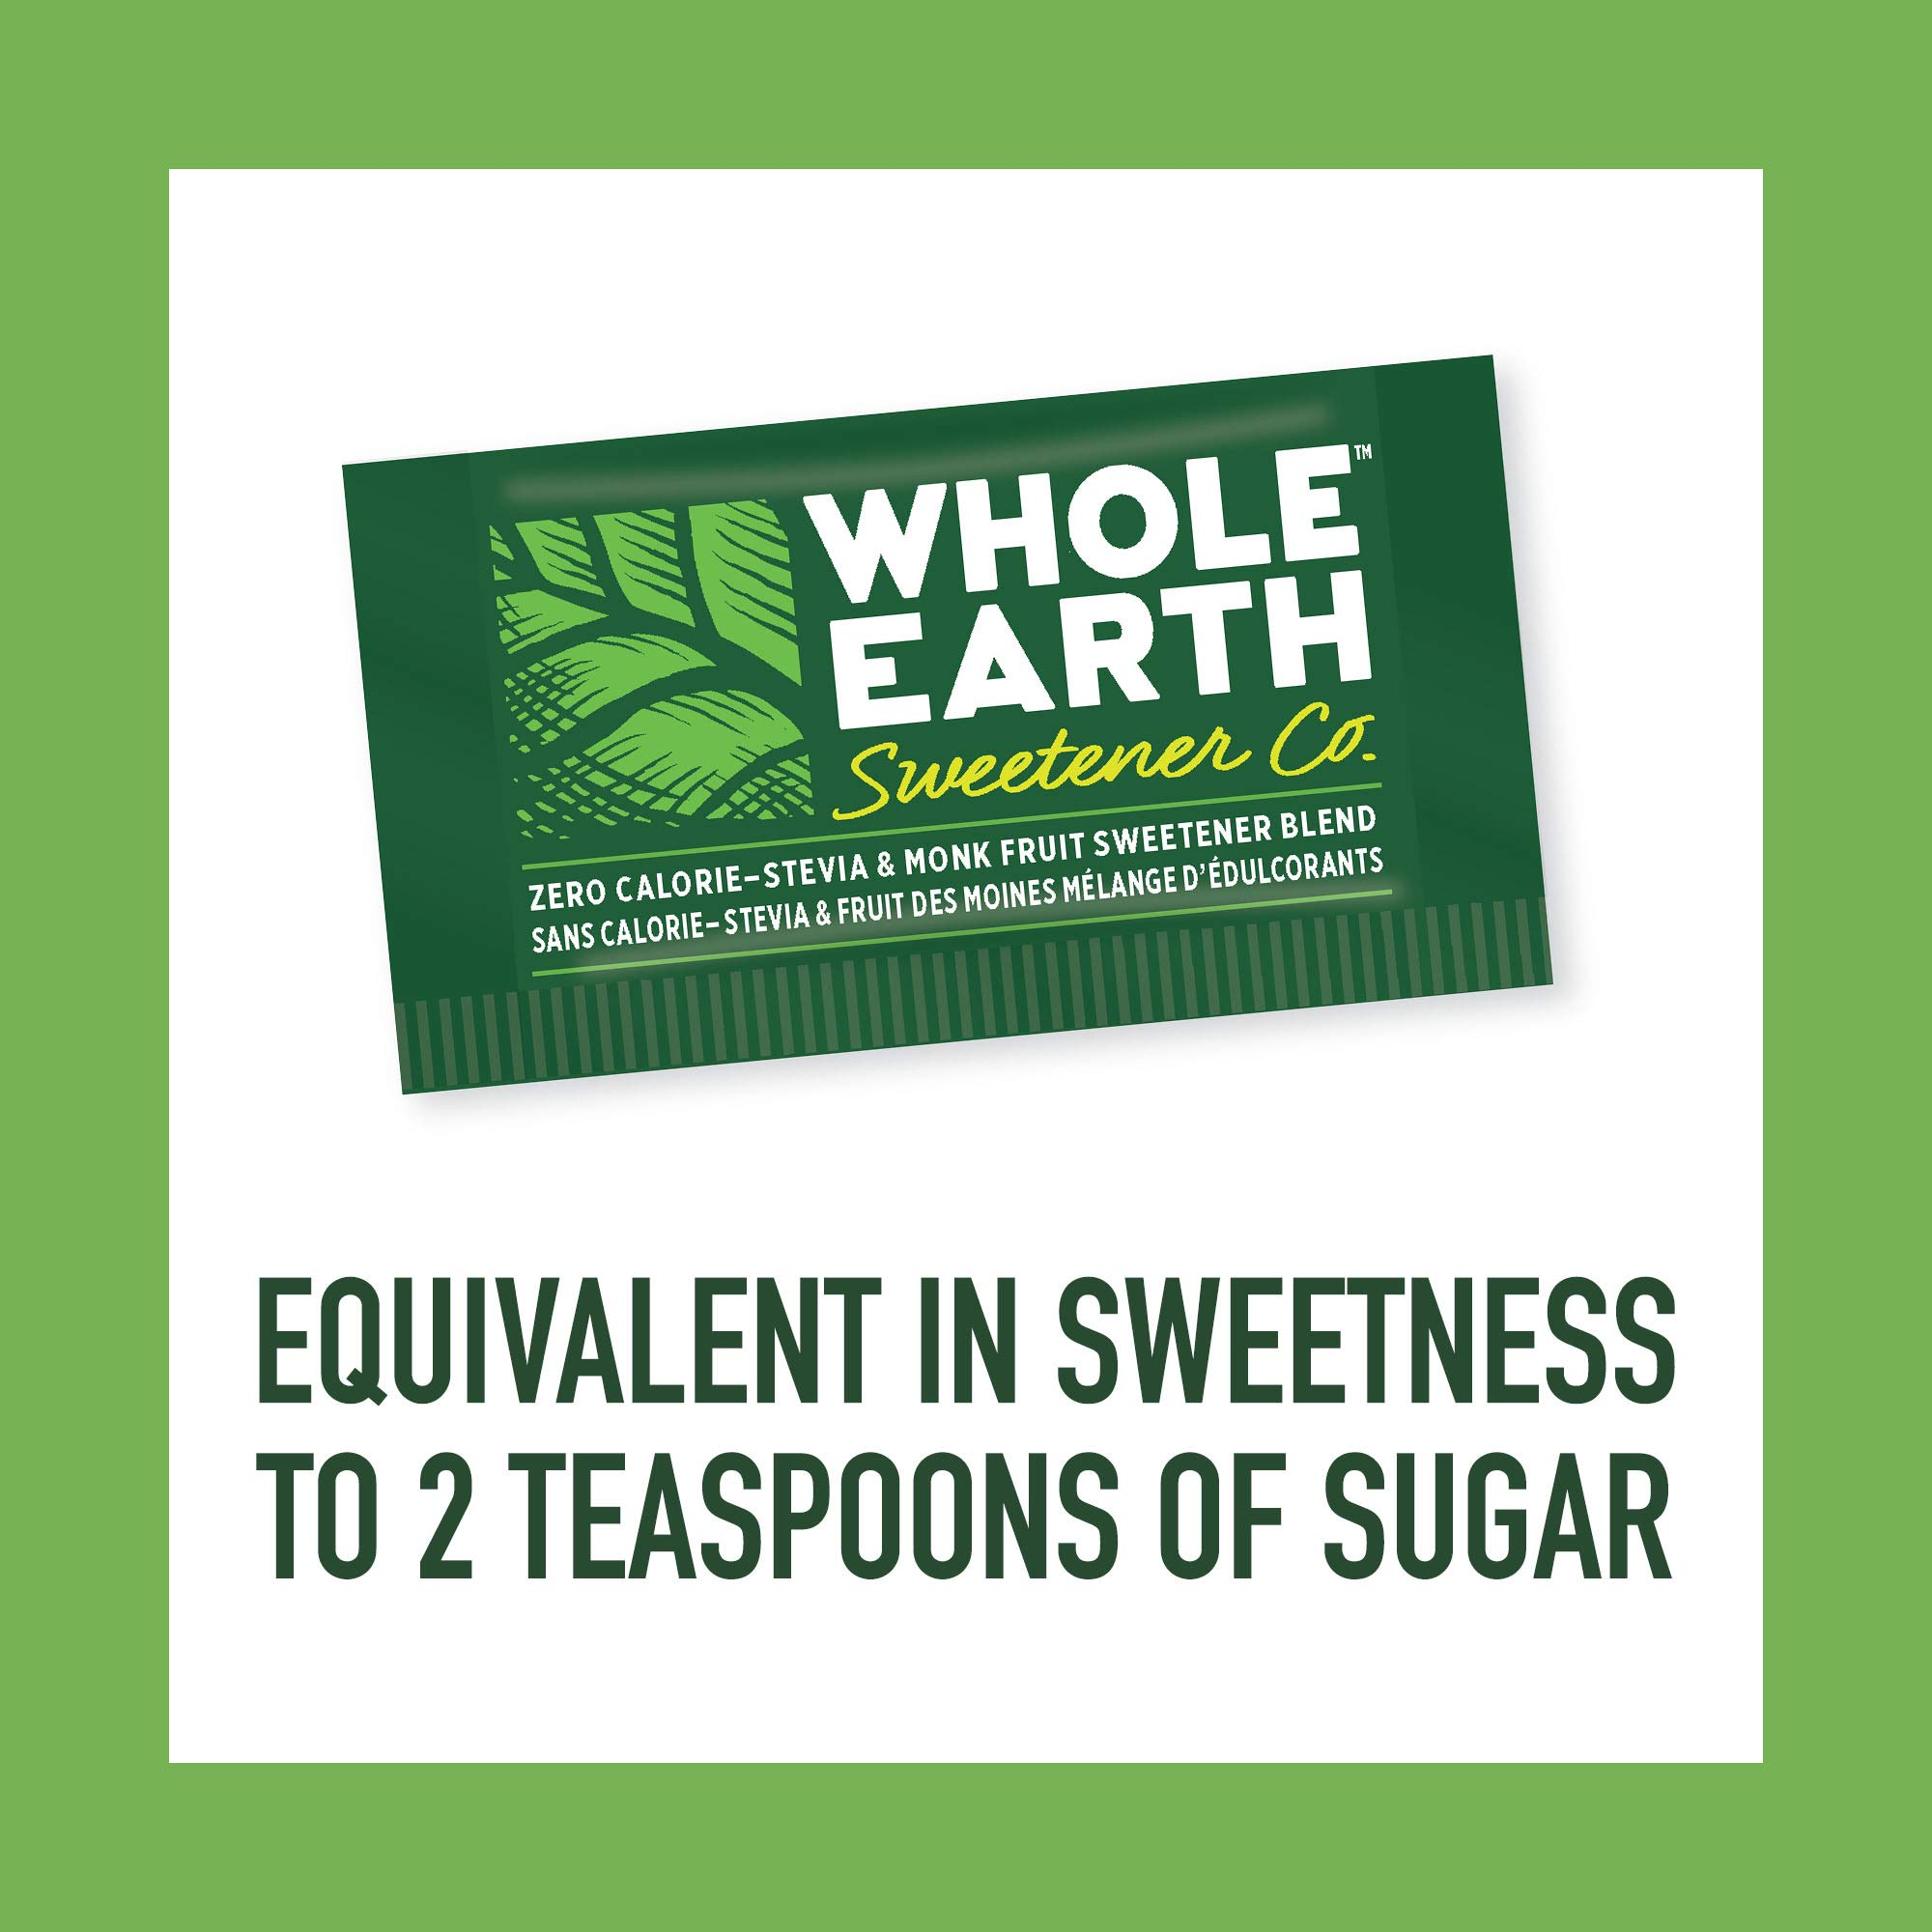 WHOLE EARTH SWEETENER Stevia and Monk Fruit Sweetener, Erythritol Sweetener, Sugar Substitute, Zero Calorie Sweetener, 1,000 Stevia Packets by Whole Earth Sweetener Company (Image #4)